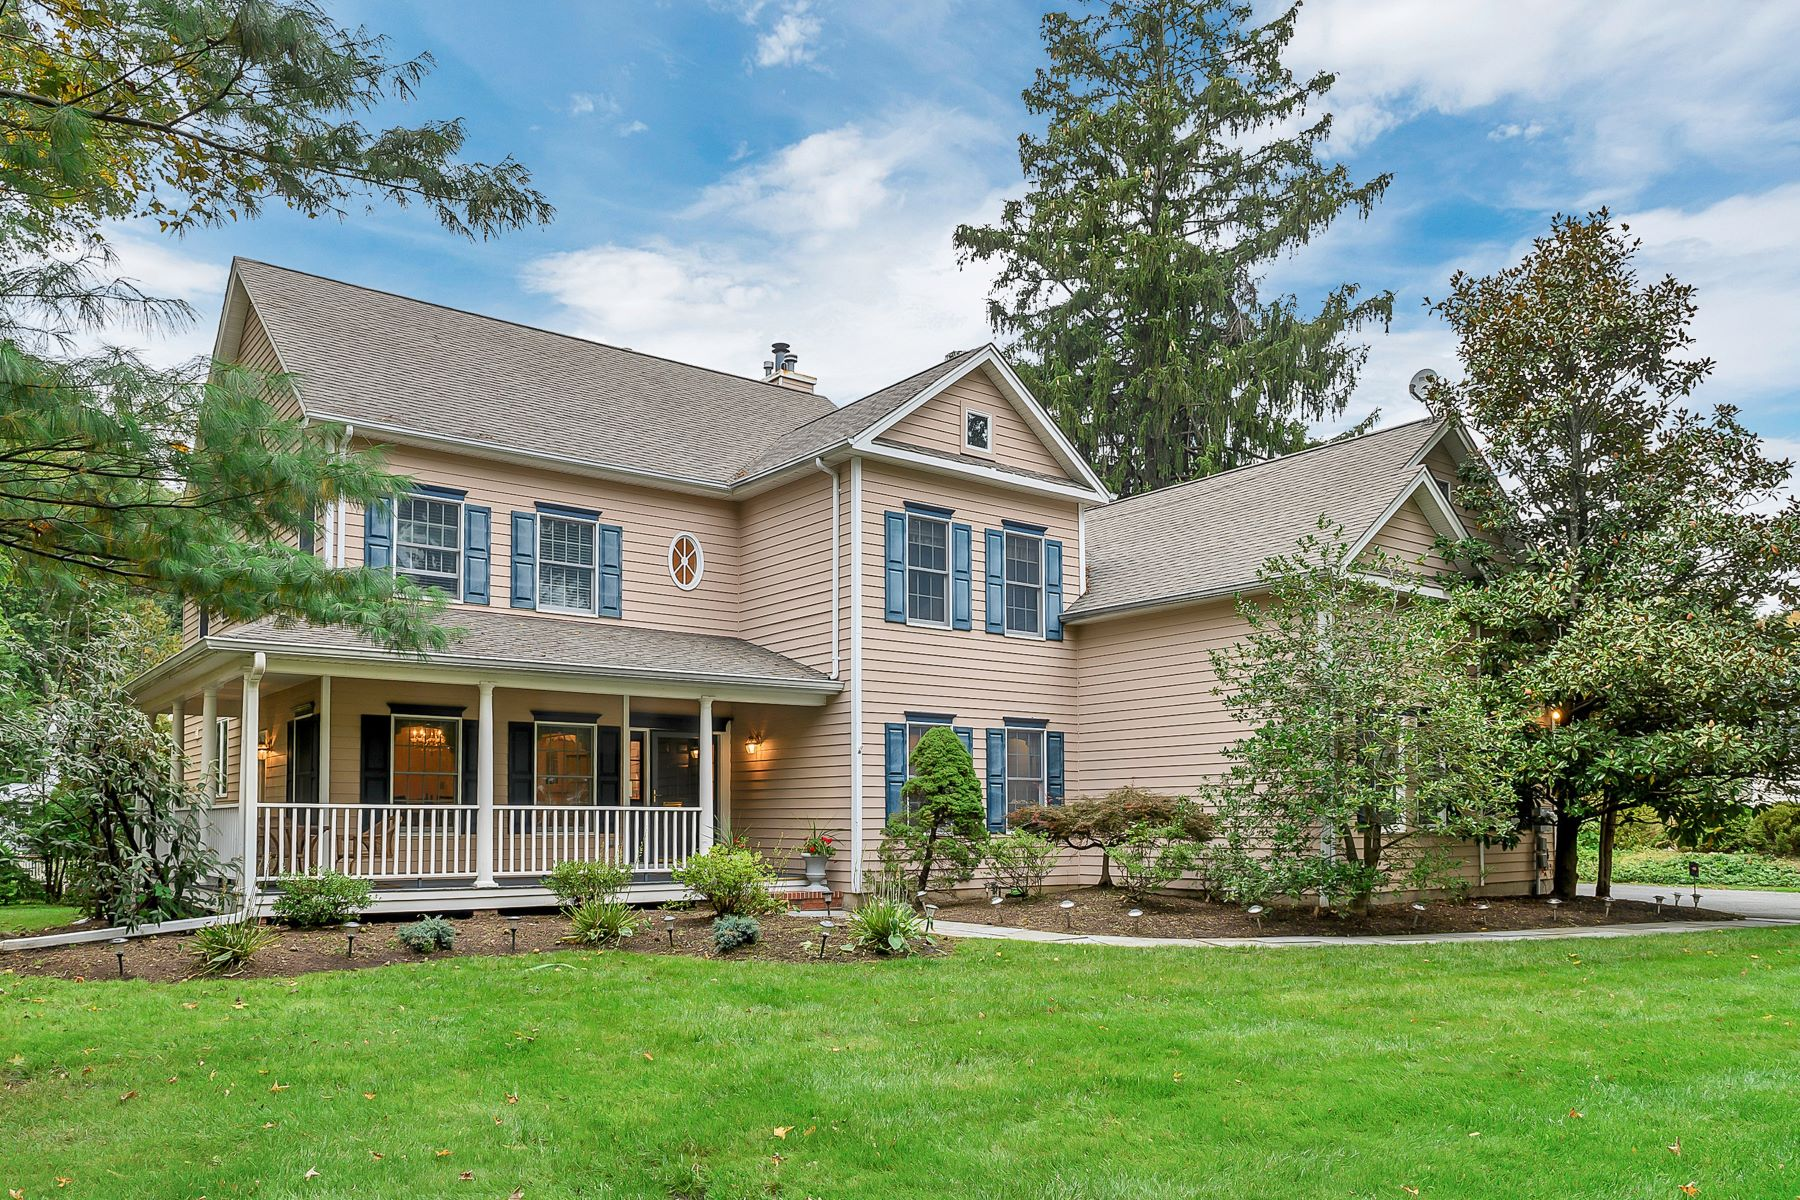 Single Family Homes for Sale at Welcoming Colonial 106 Intervale Road Mountain Lakes, New Jersey 07046 United States